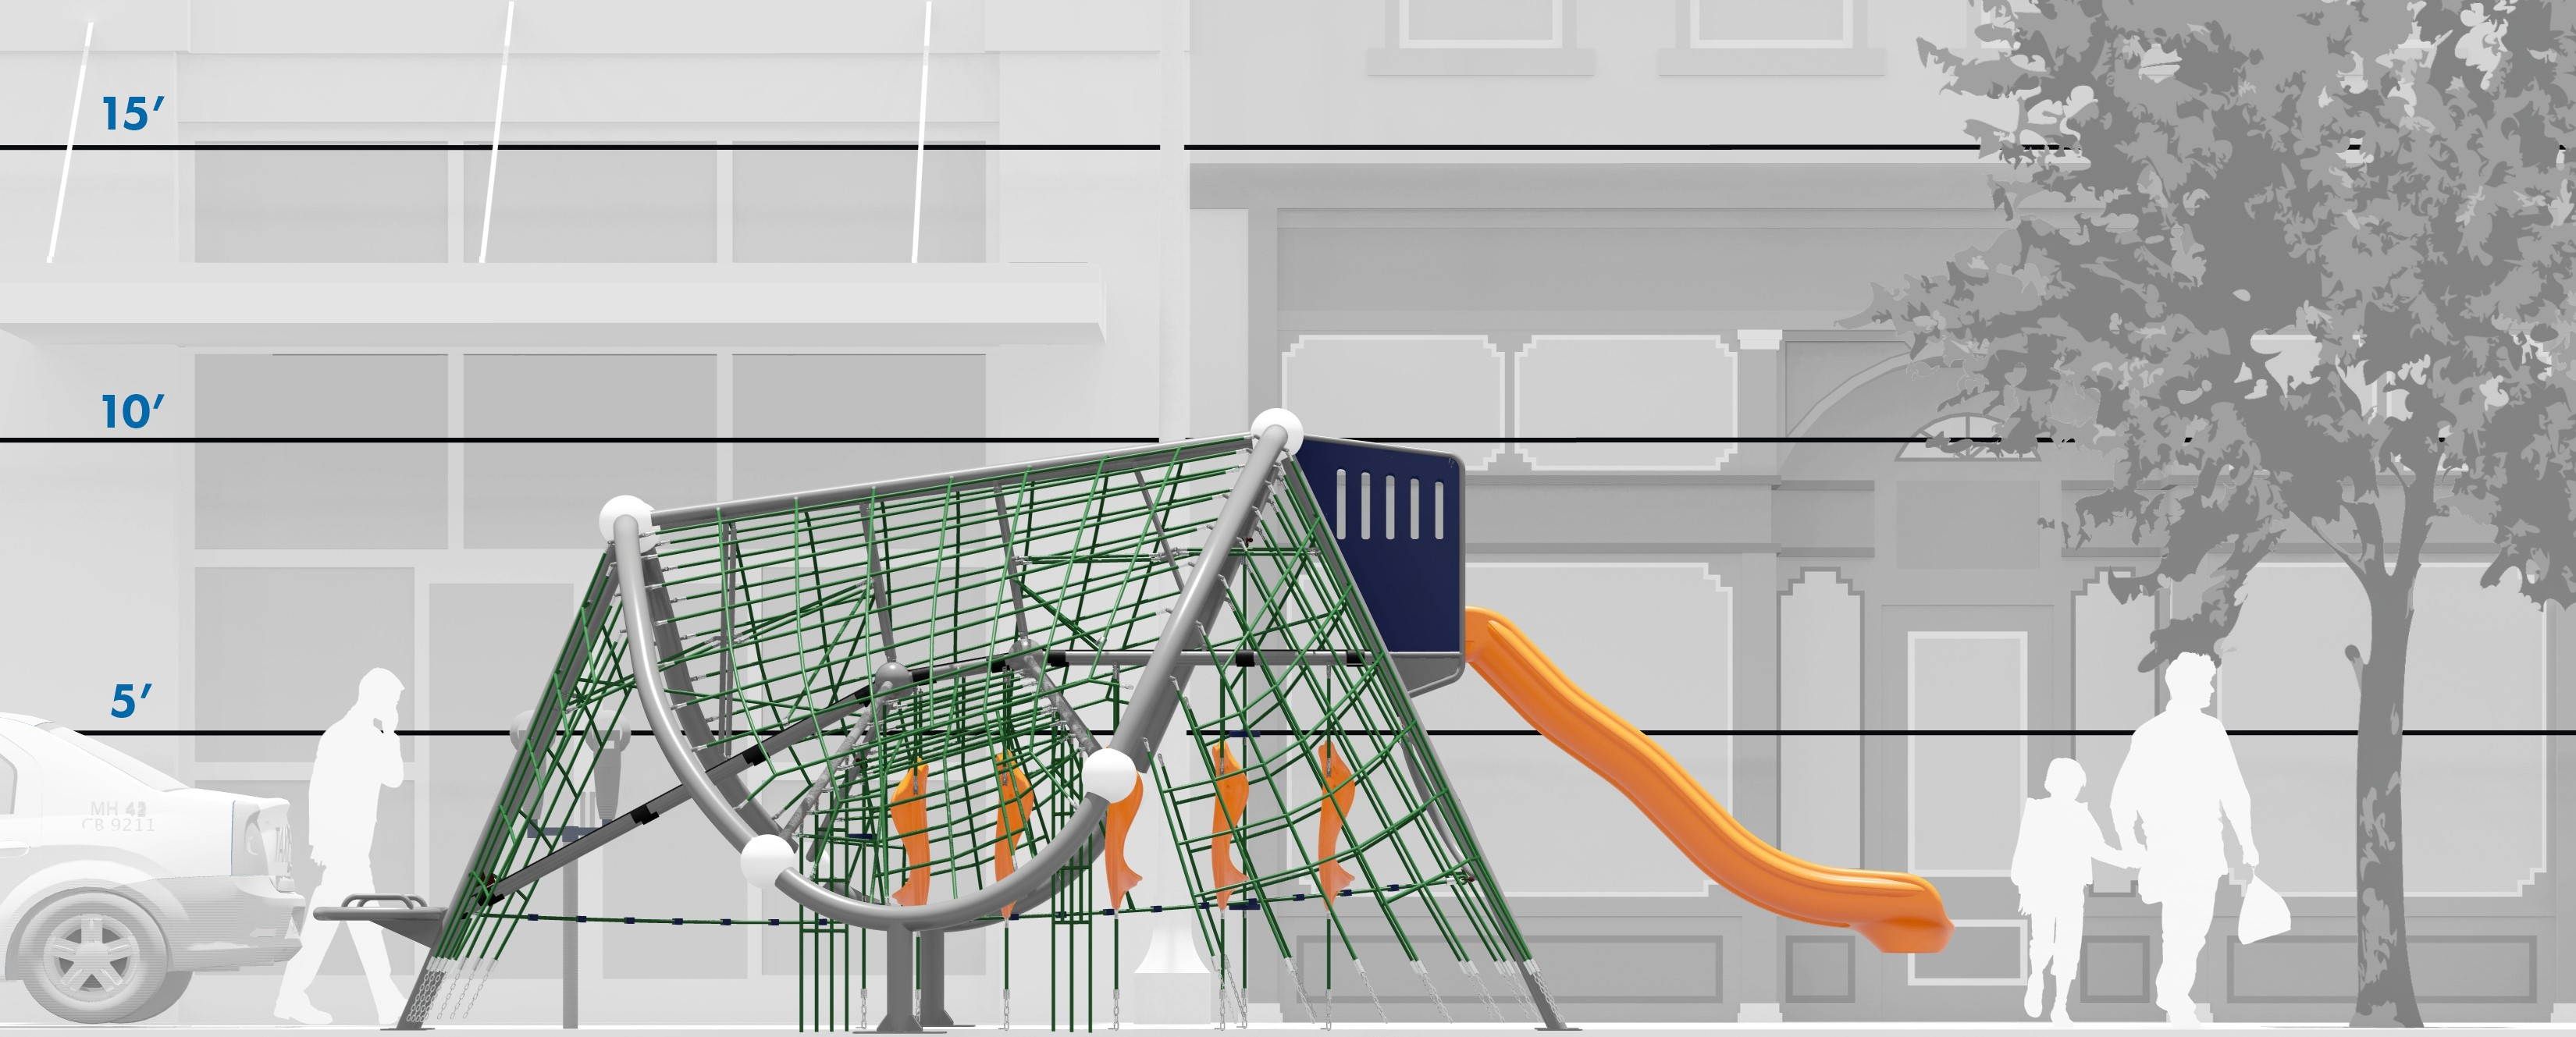 Scale rendering of GT Wave playground net climber